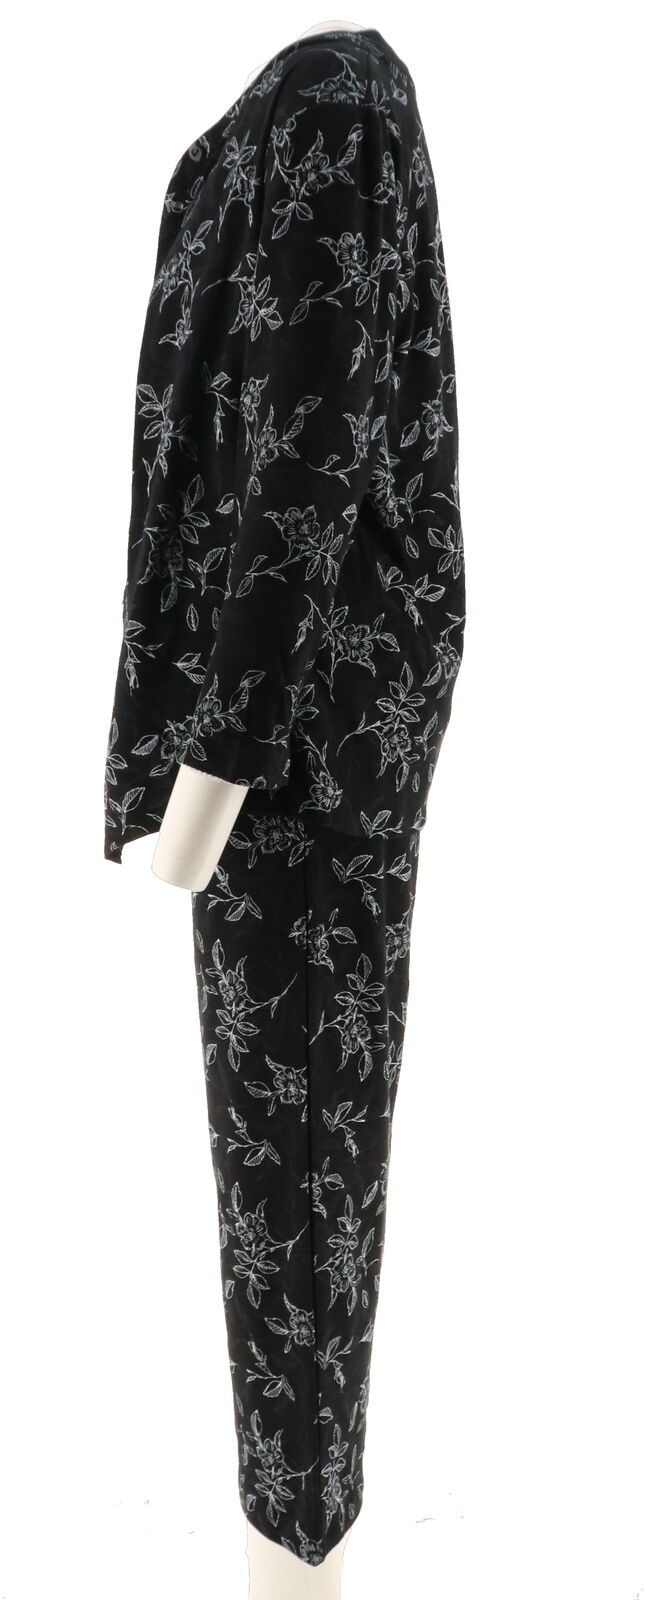 Stan Herman Micro Fleece Novelty Pajama Set Color Black//Natural Size Tall Large